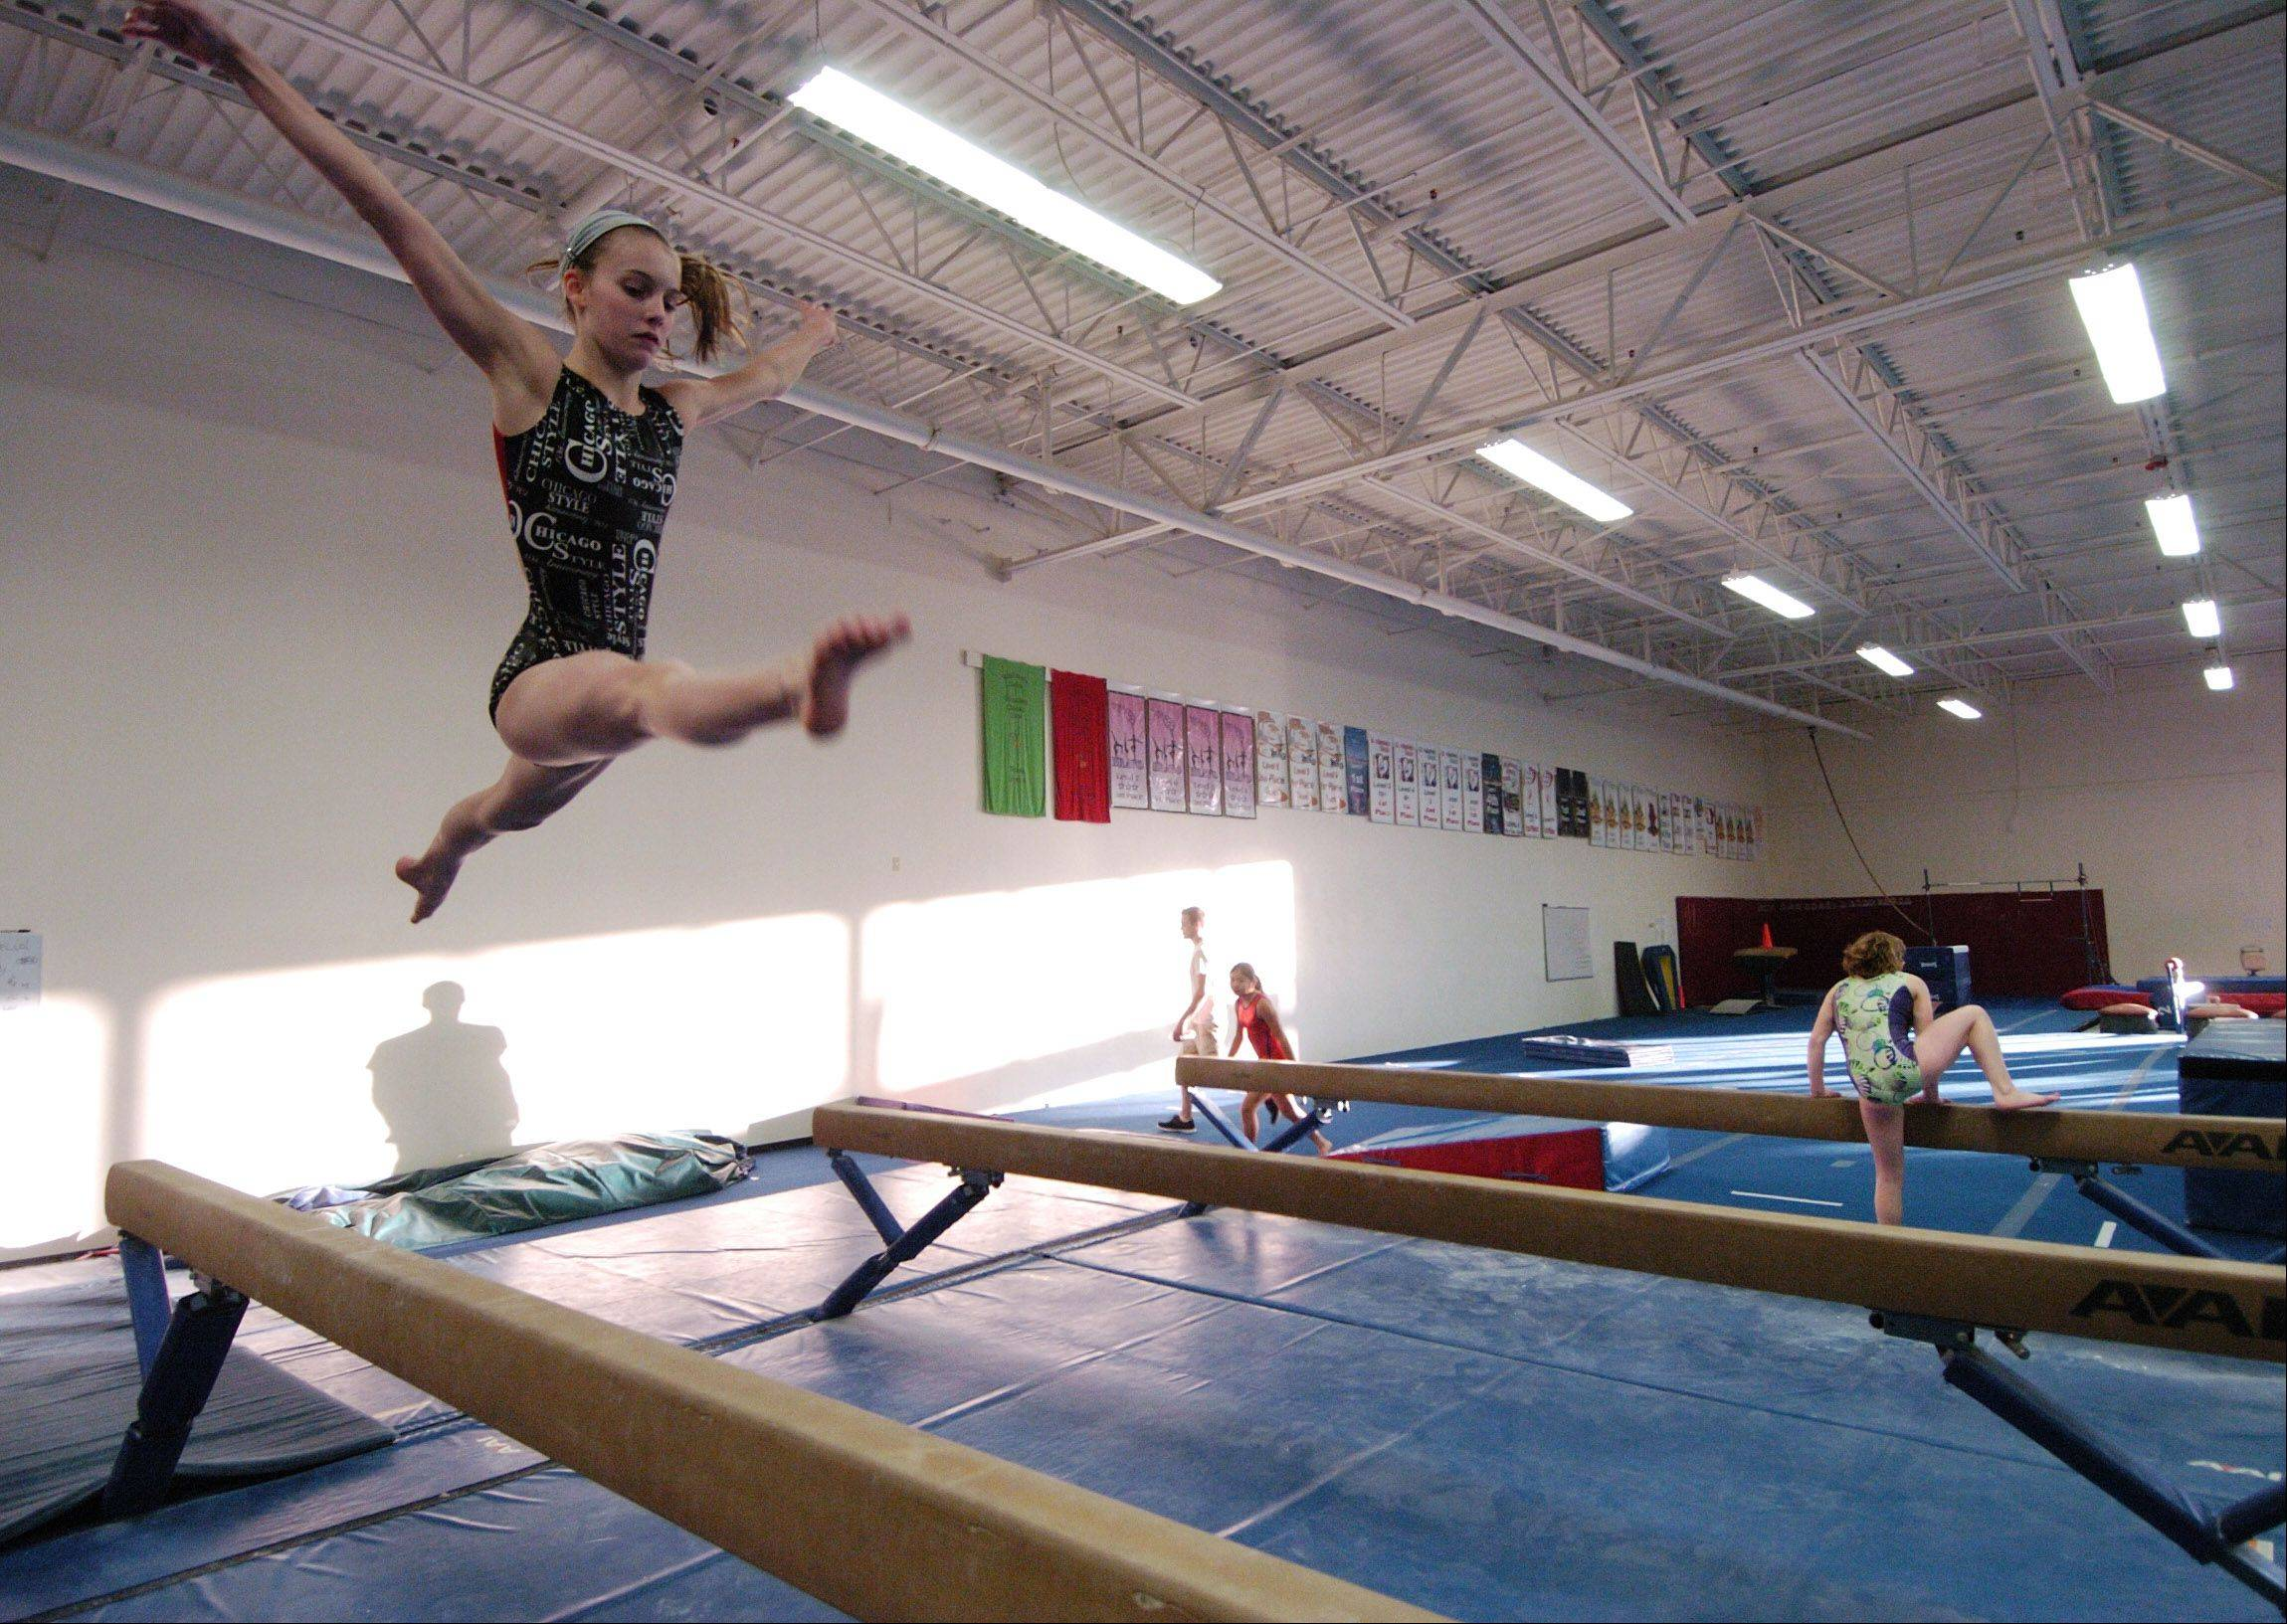 Ashley Suchyta, 13, of Barrington practices on the balance beam at Midwest Elite Gymnastics Academy in South Barrington. The academy will be moving to Elgin in January.